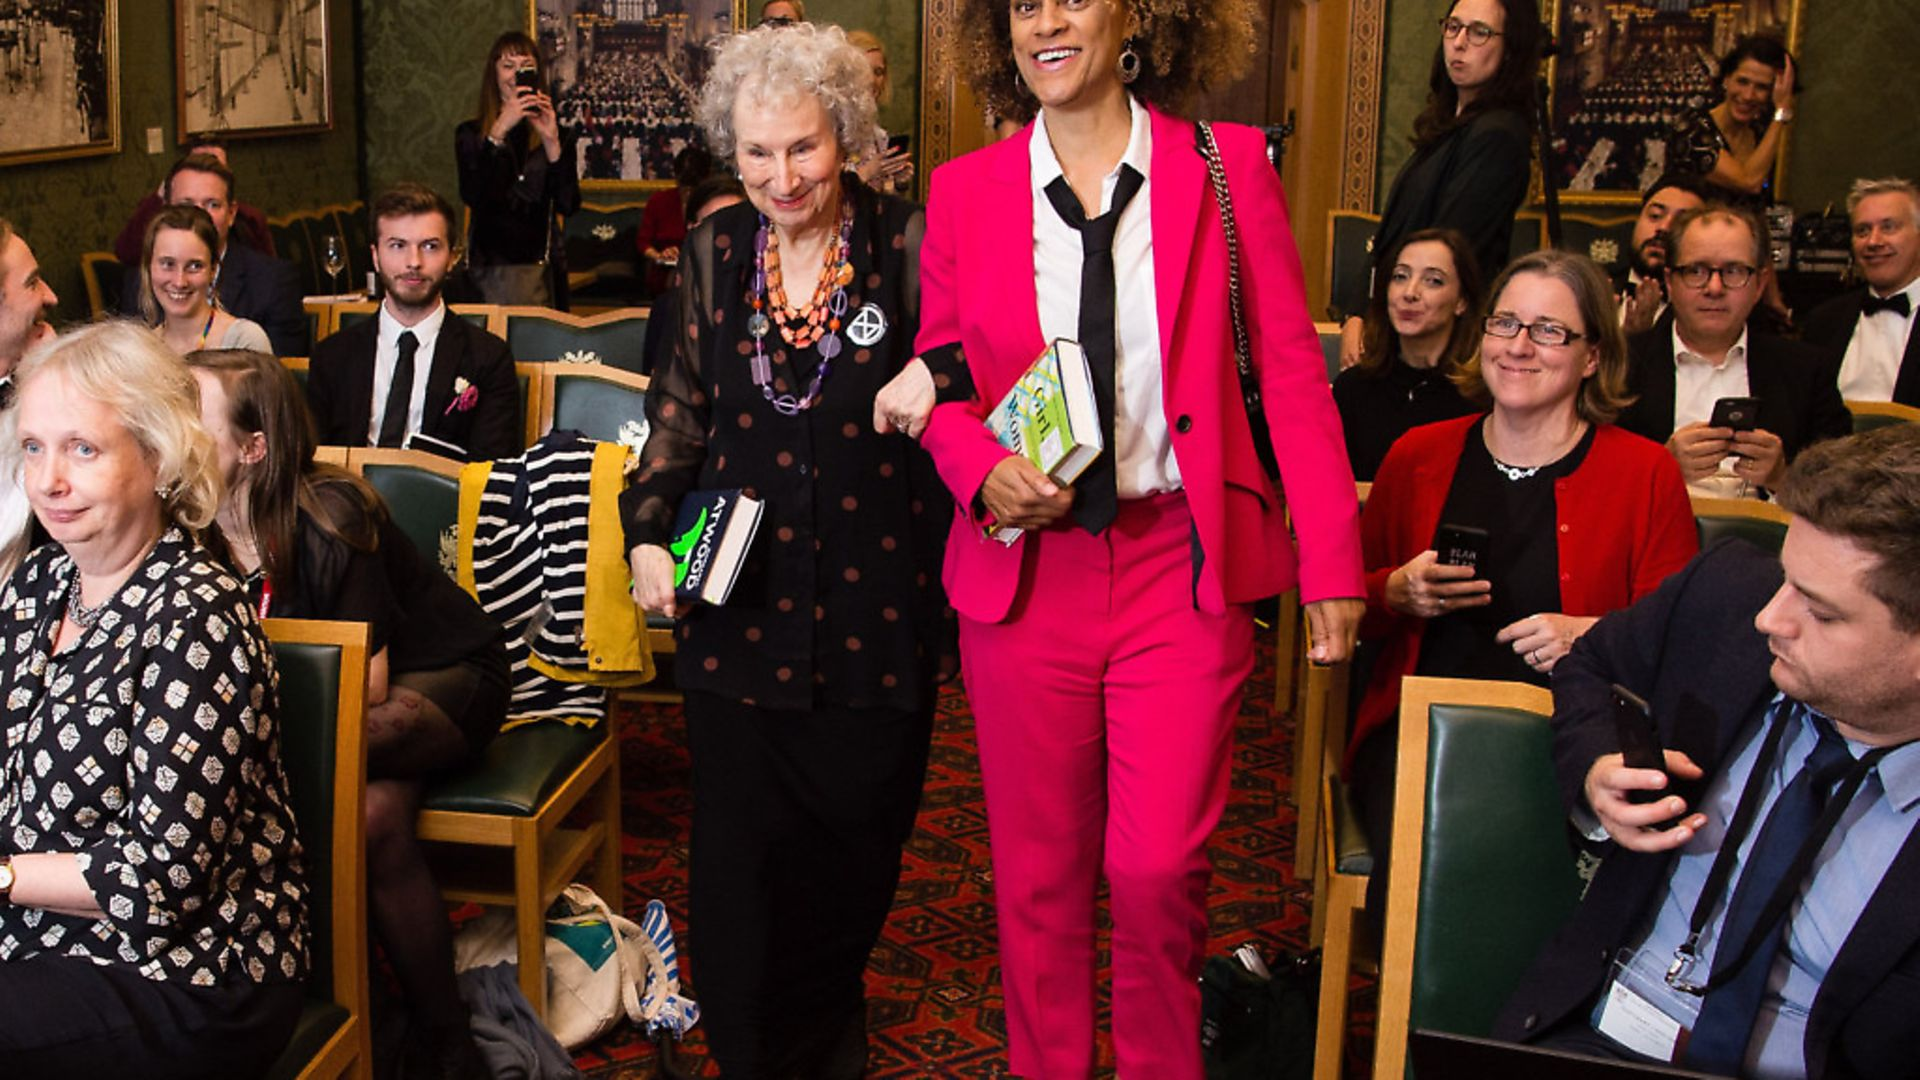 Joint winners Margaret Atwood and Bernardine Evaristo during 2019 Booker Prize Winner Announcement . (Photo by Jeff Spicer/Getty Images) - Credit: Getty Images